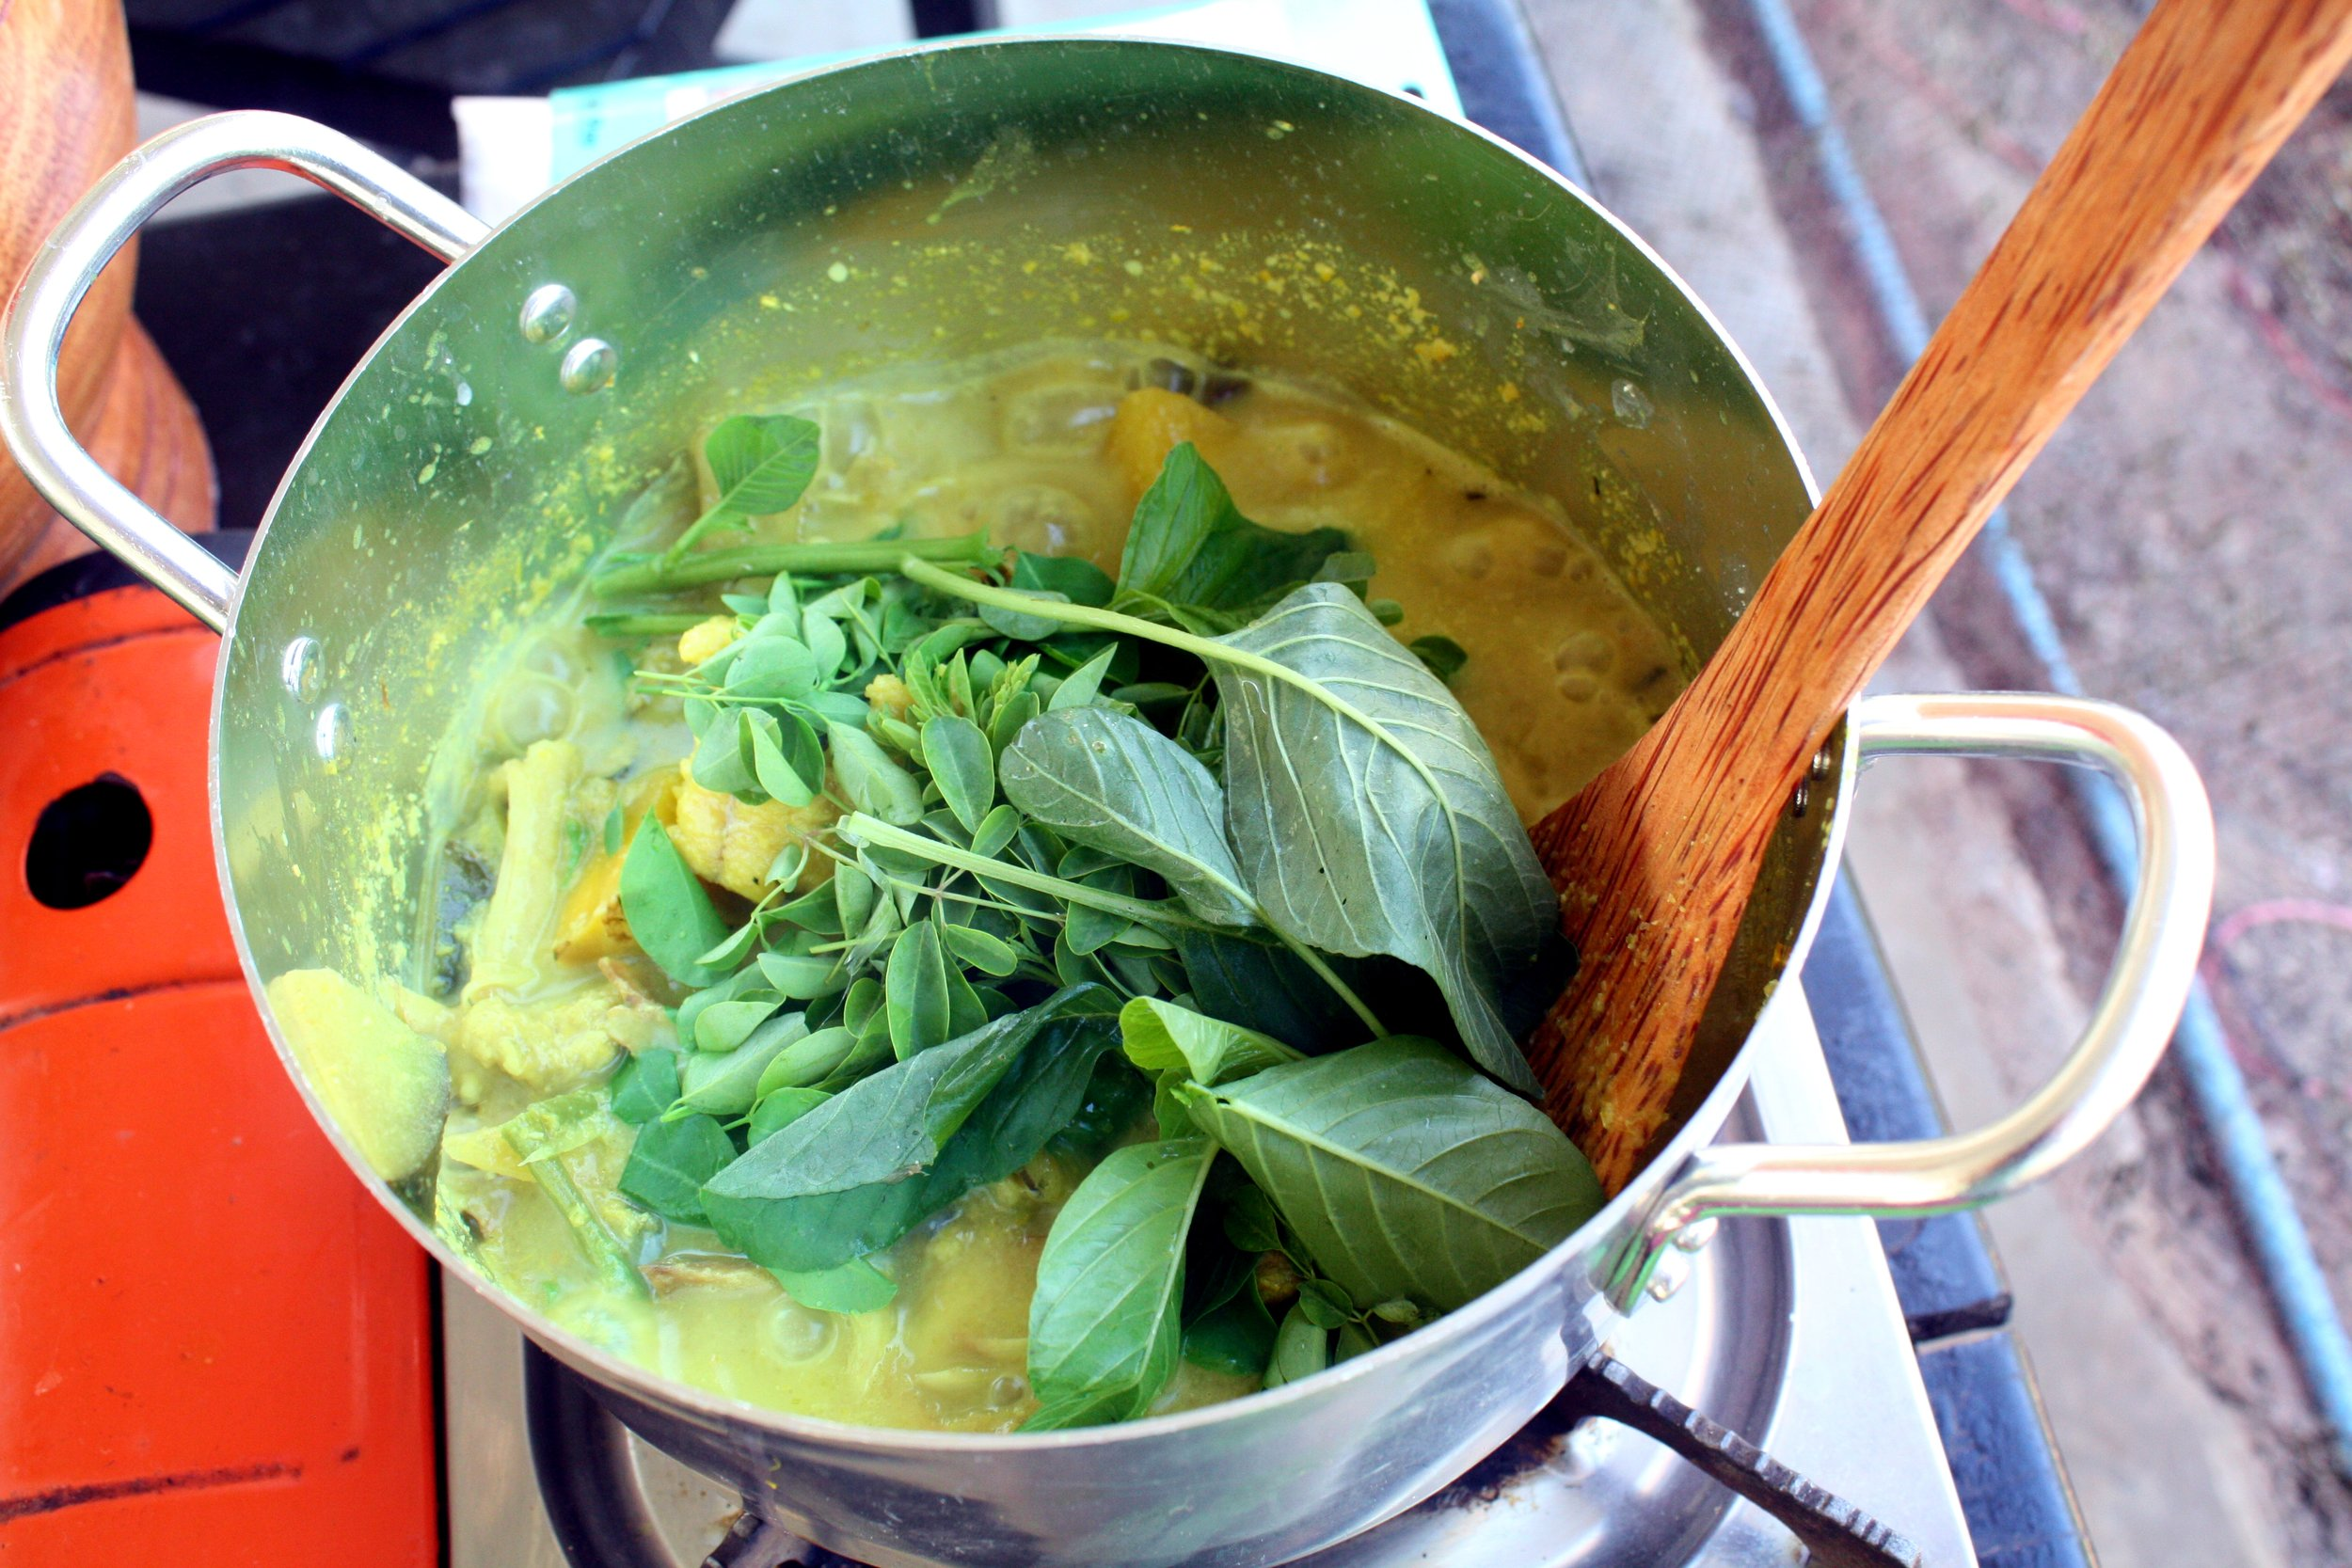 Our Samlor Kakor (Fish and Vegetable Coconut Soup) in the making.